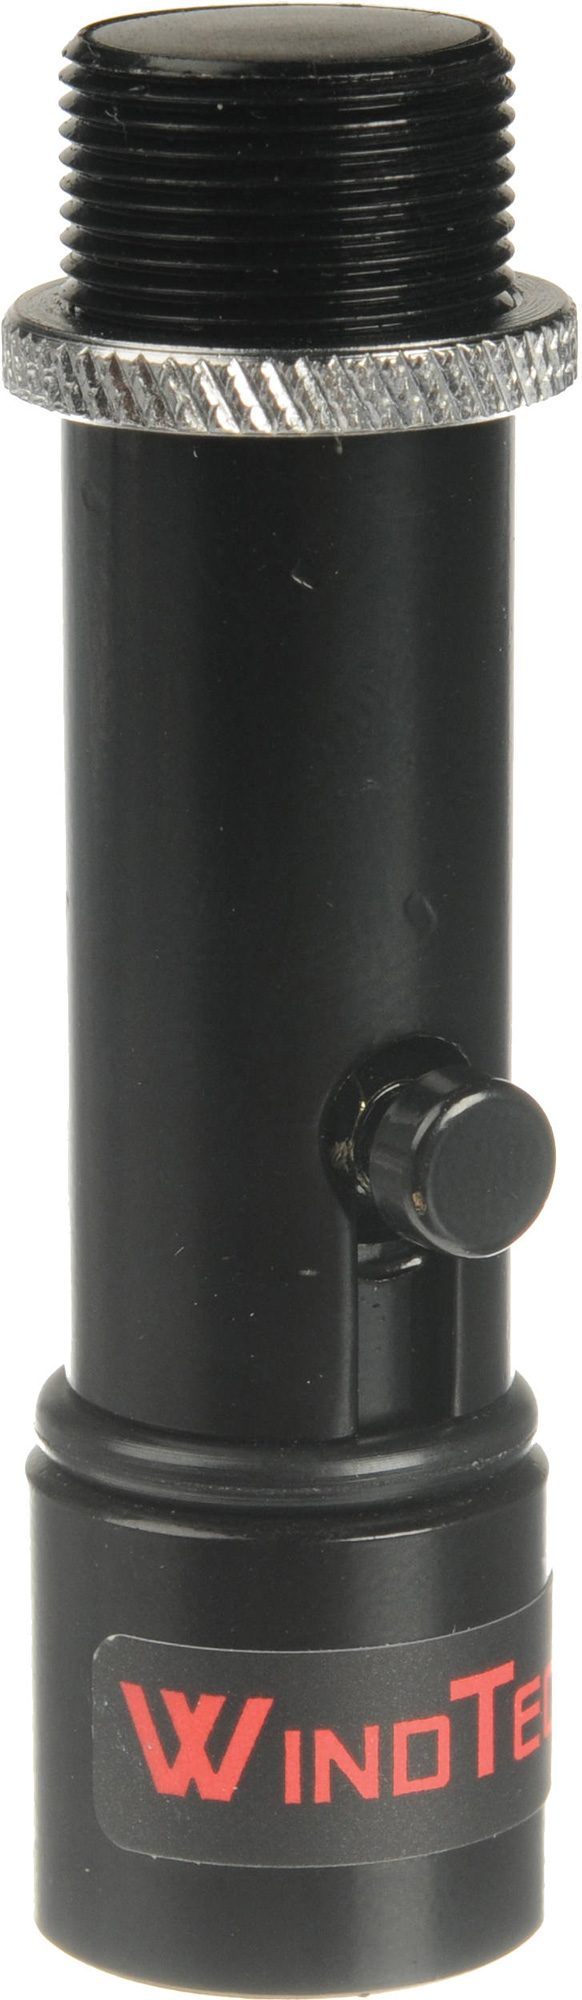 Black Microphone Quick Release Adapter WT-QC2B